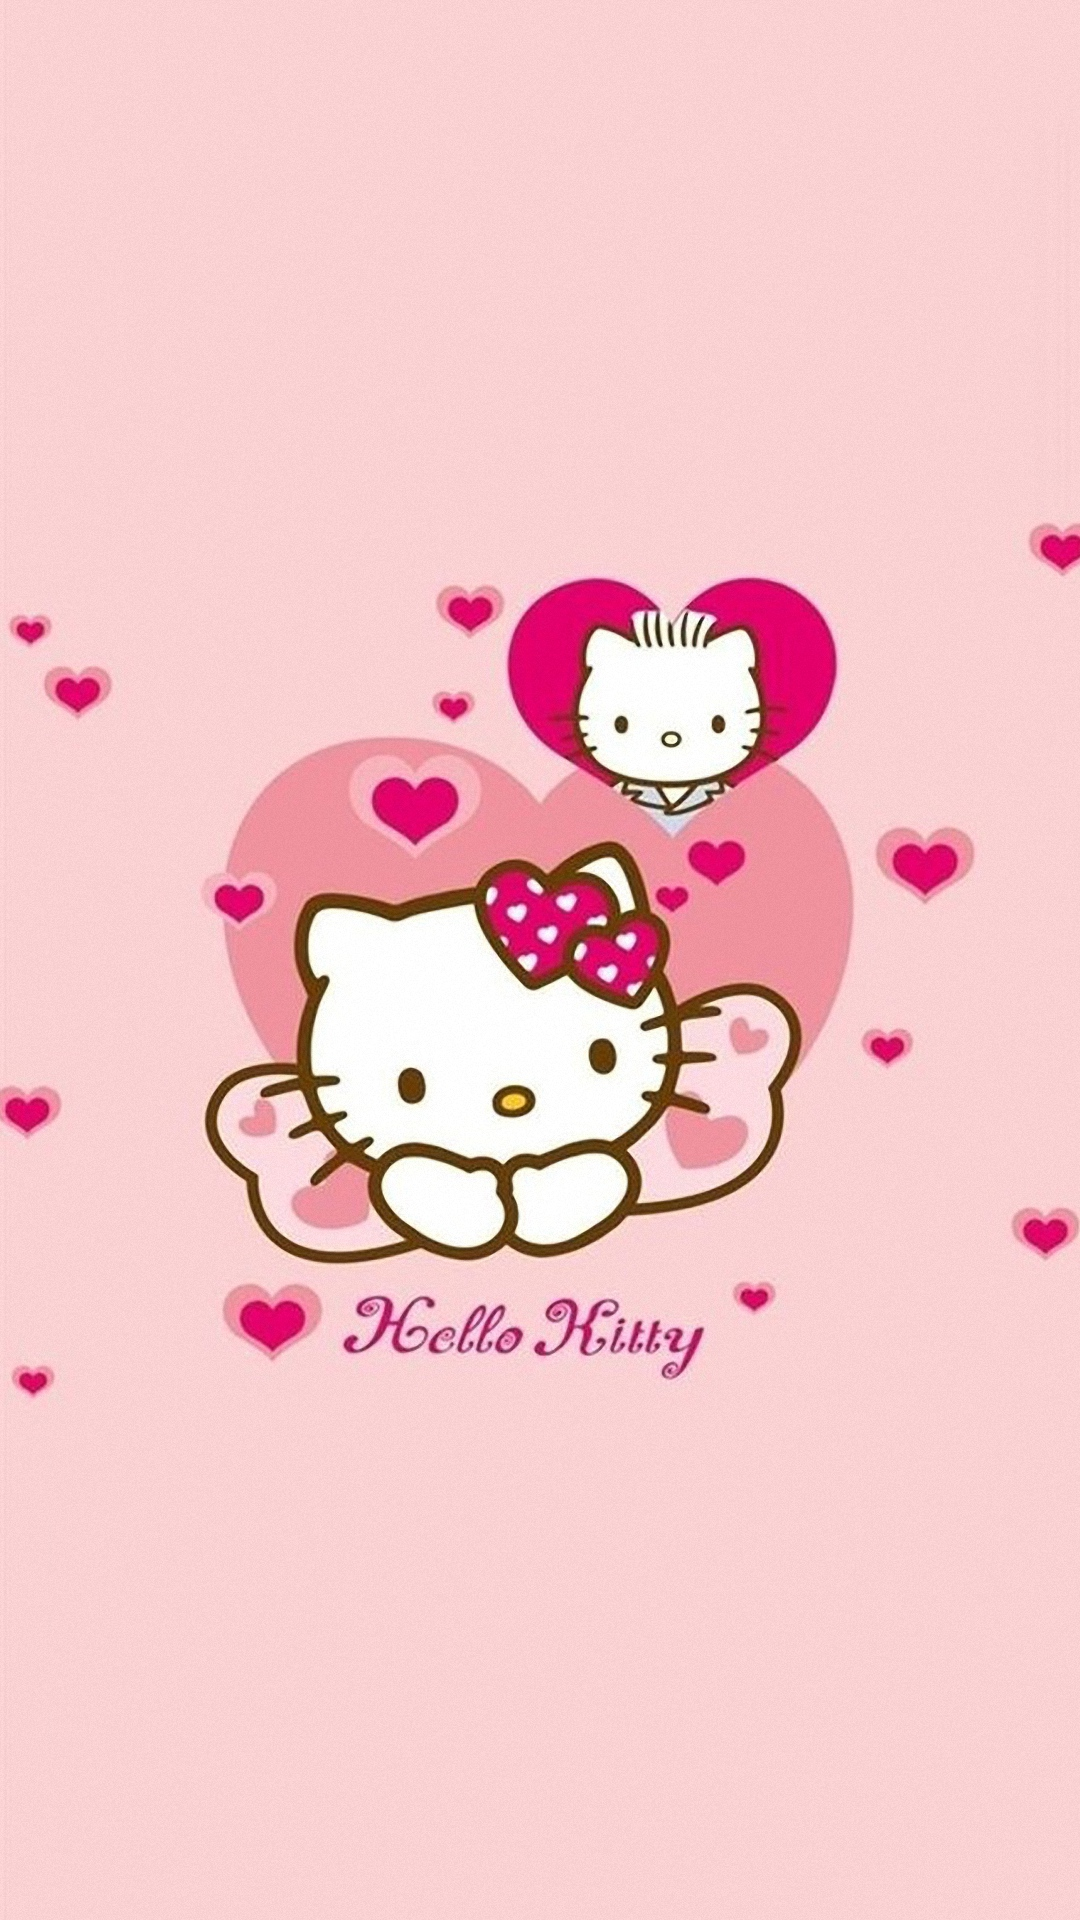 Free Download Hello Kitty Iphone Wallpaper Hd 1080x1920